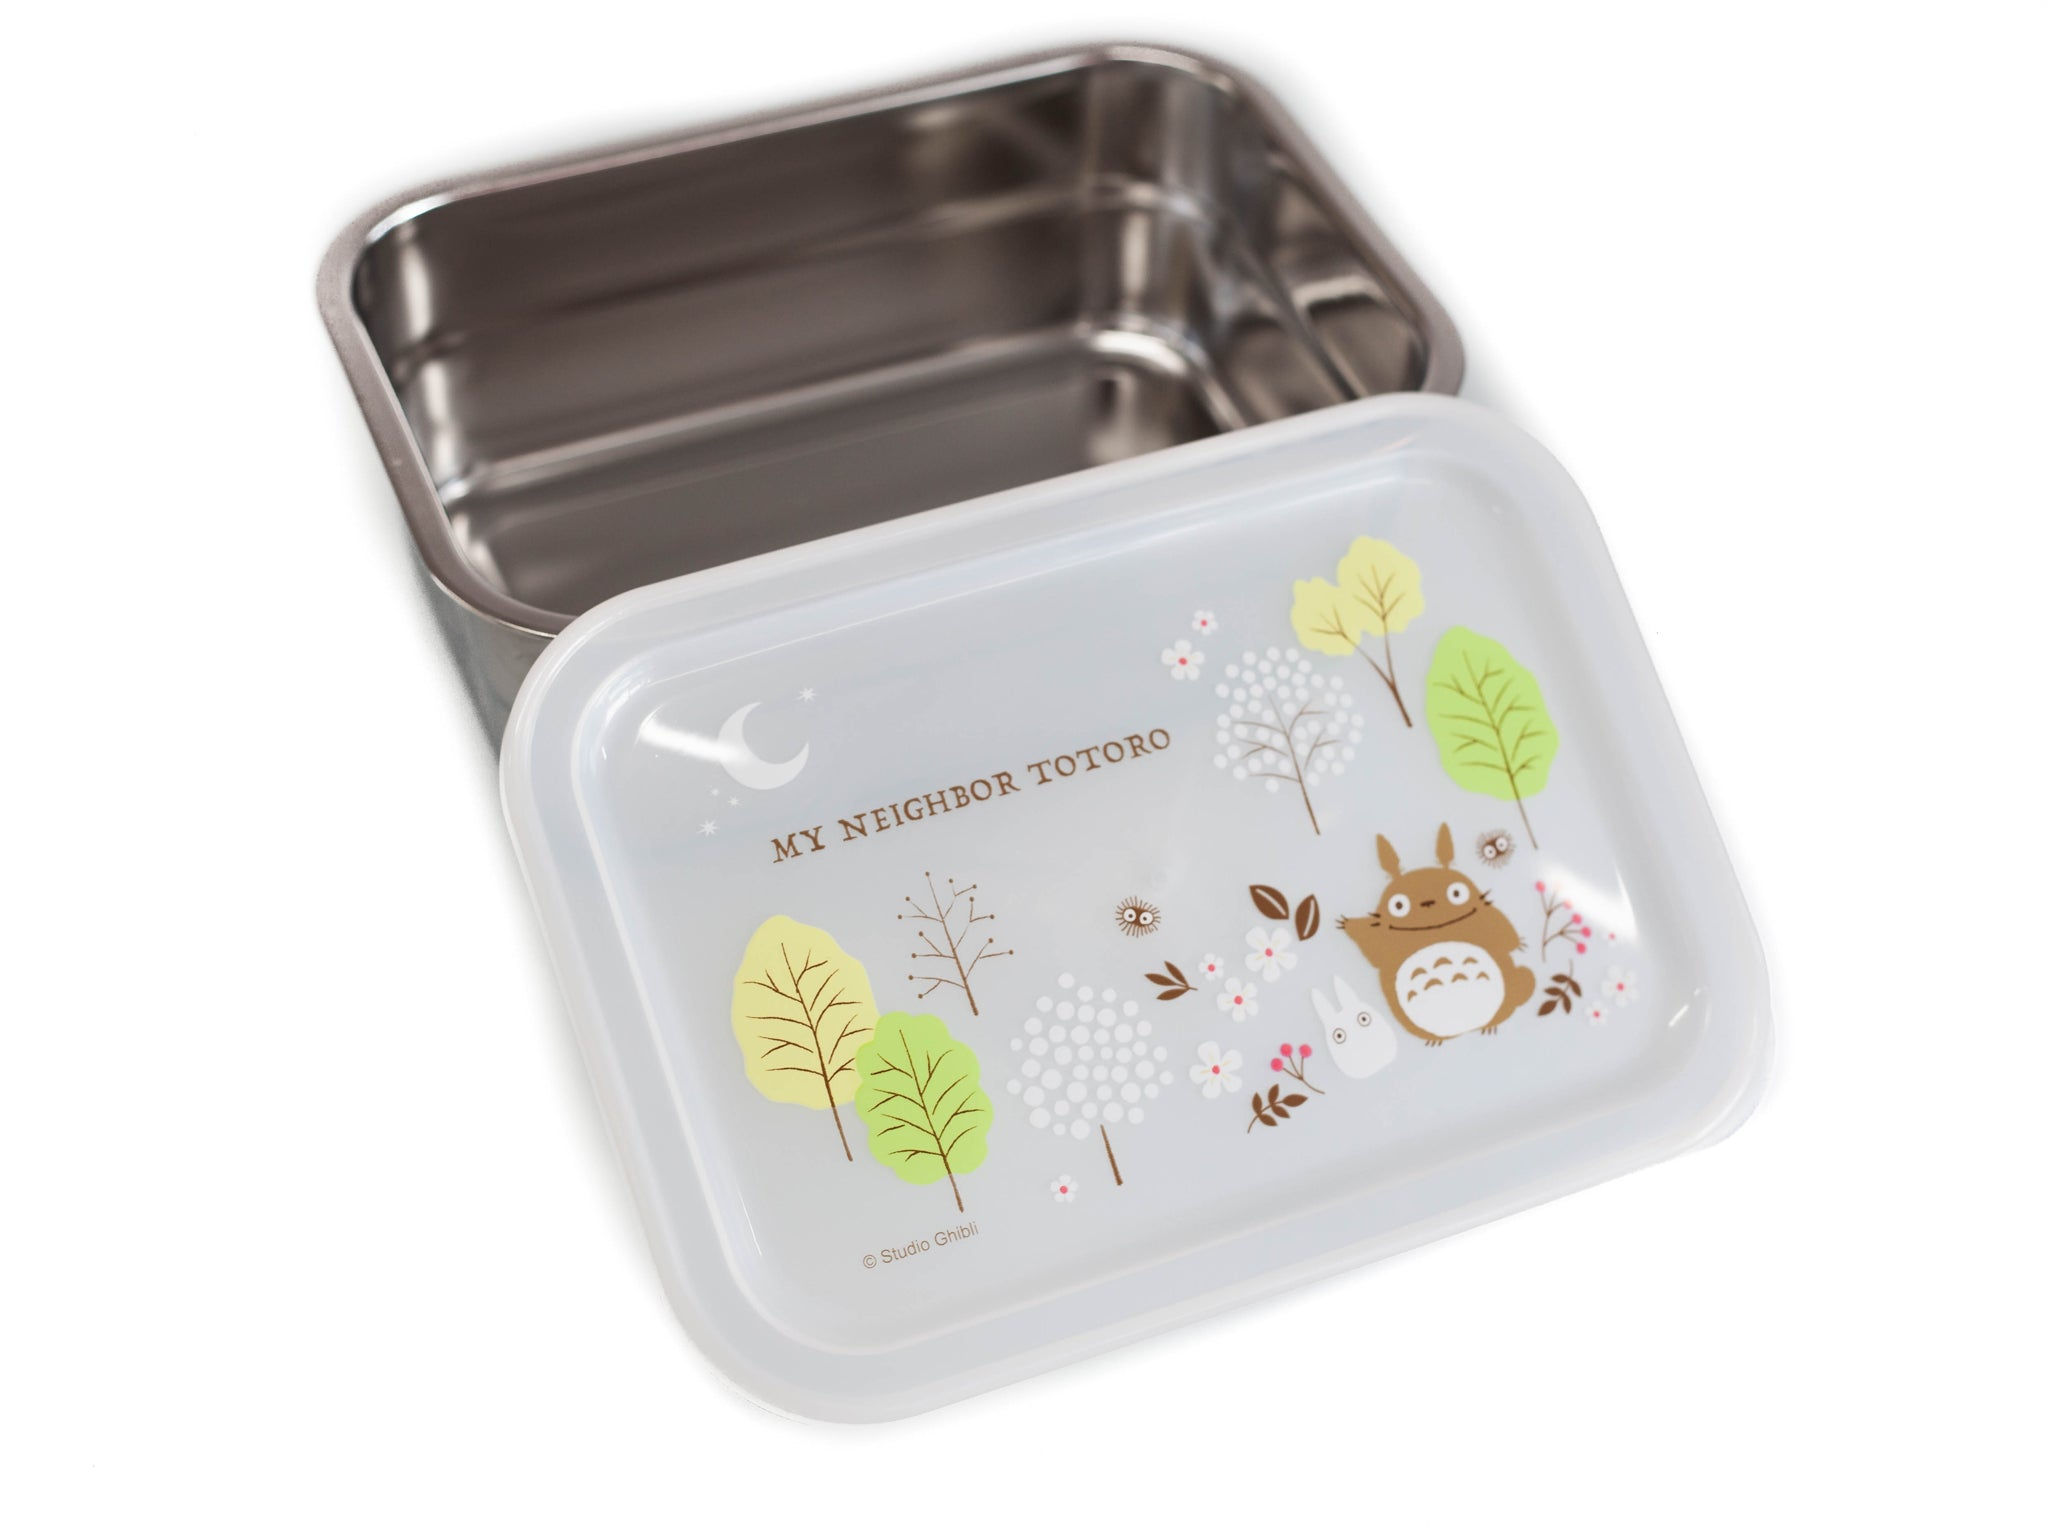 Totoro Field Stainless Steel Container 850ml by Skater - Bento&co Japanese Bento Lunch Boxes and Kitchenware Specialists